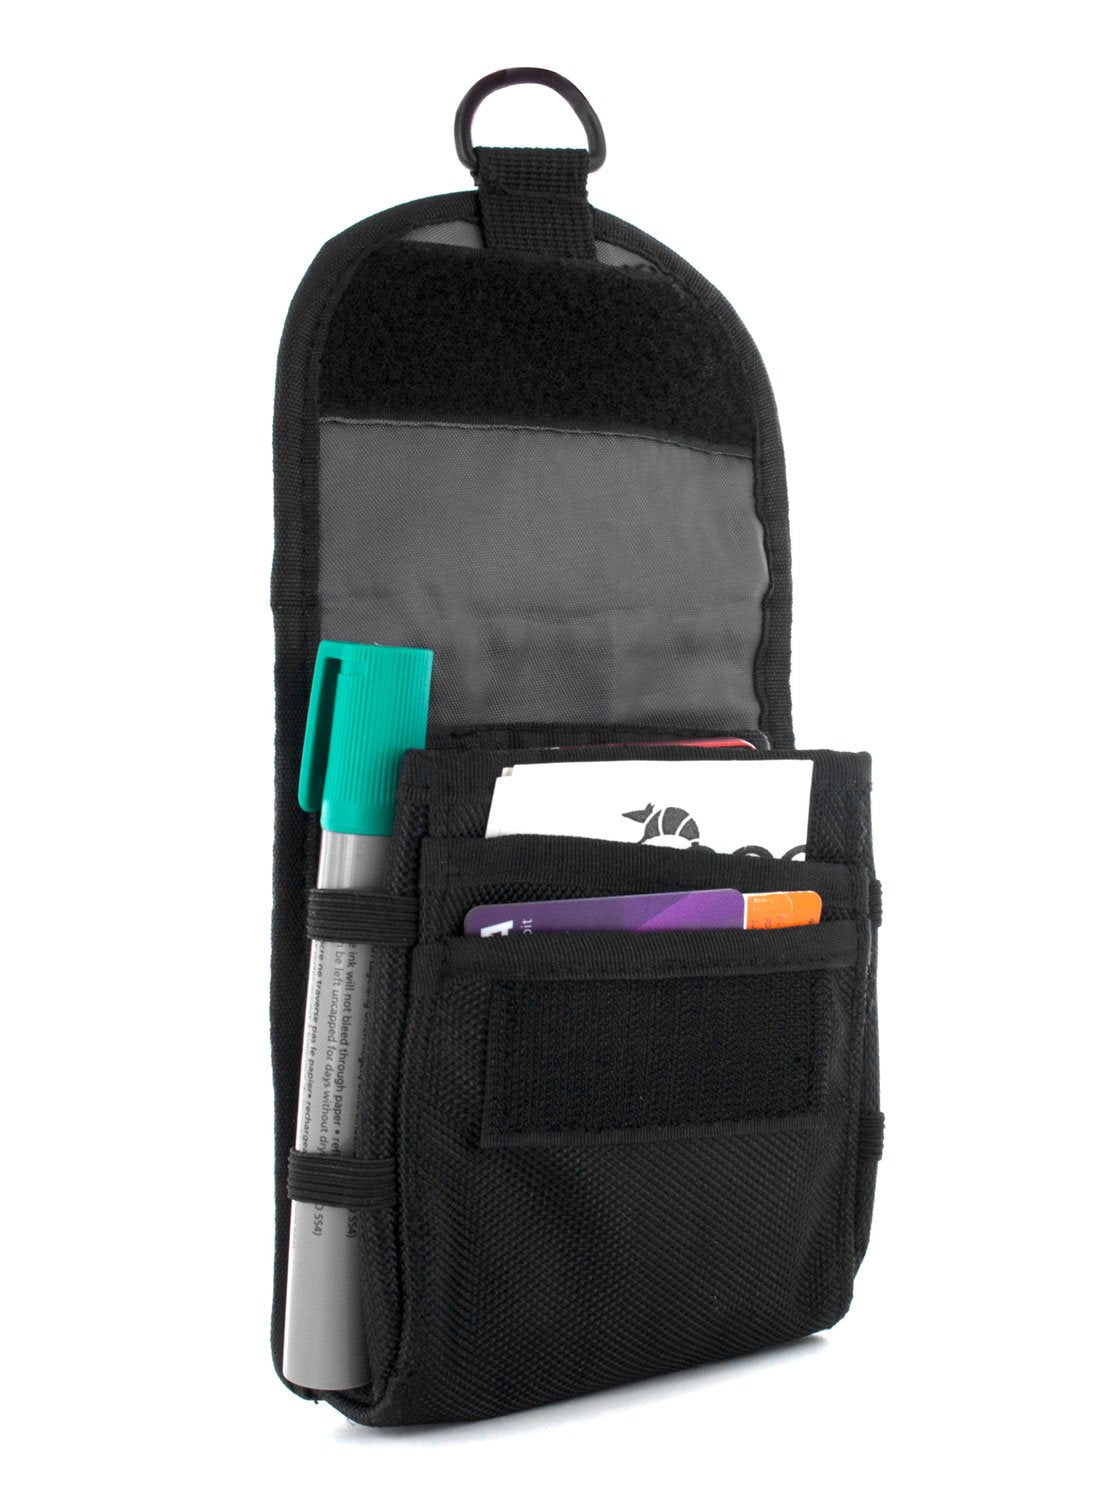 Hero image of the Proporta Universal bag in Black